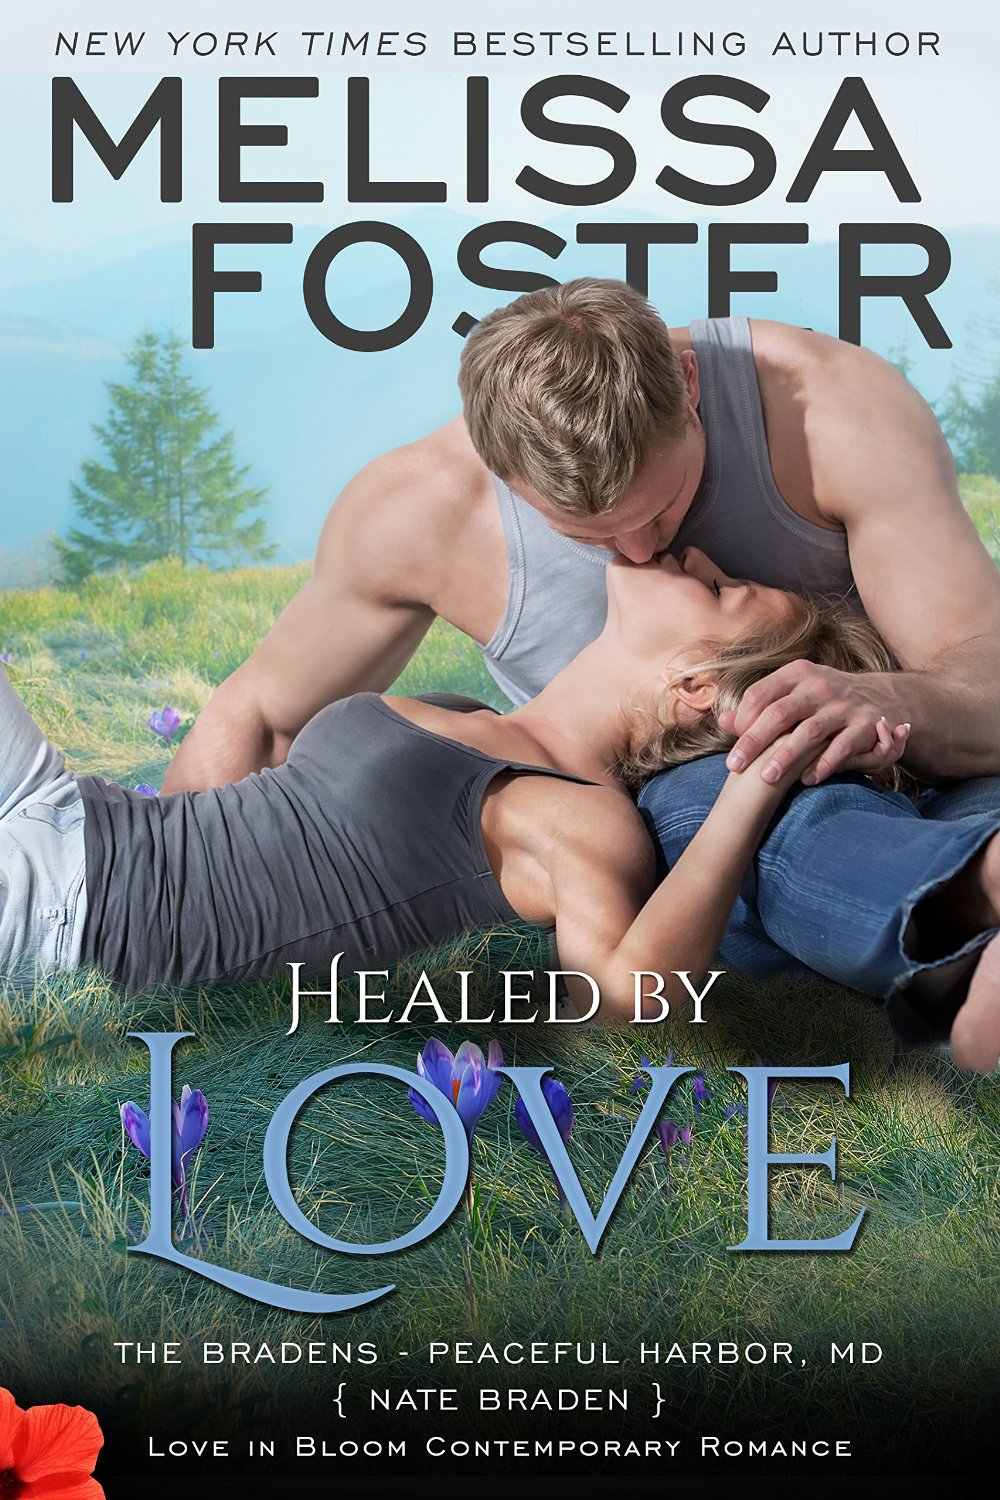 Win 2 copies of Healed by Love by Melissa Foster.